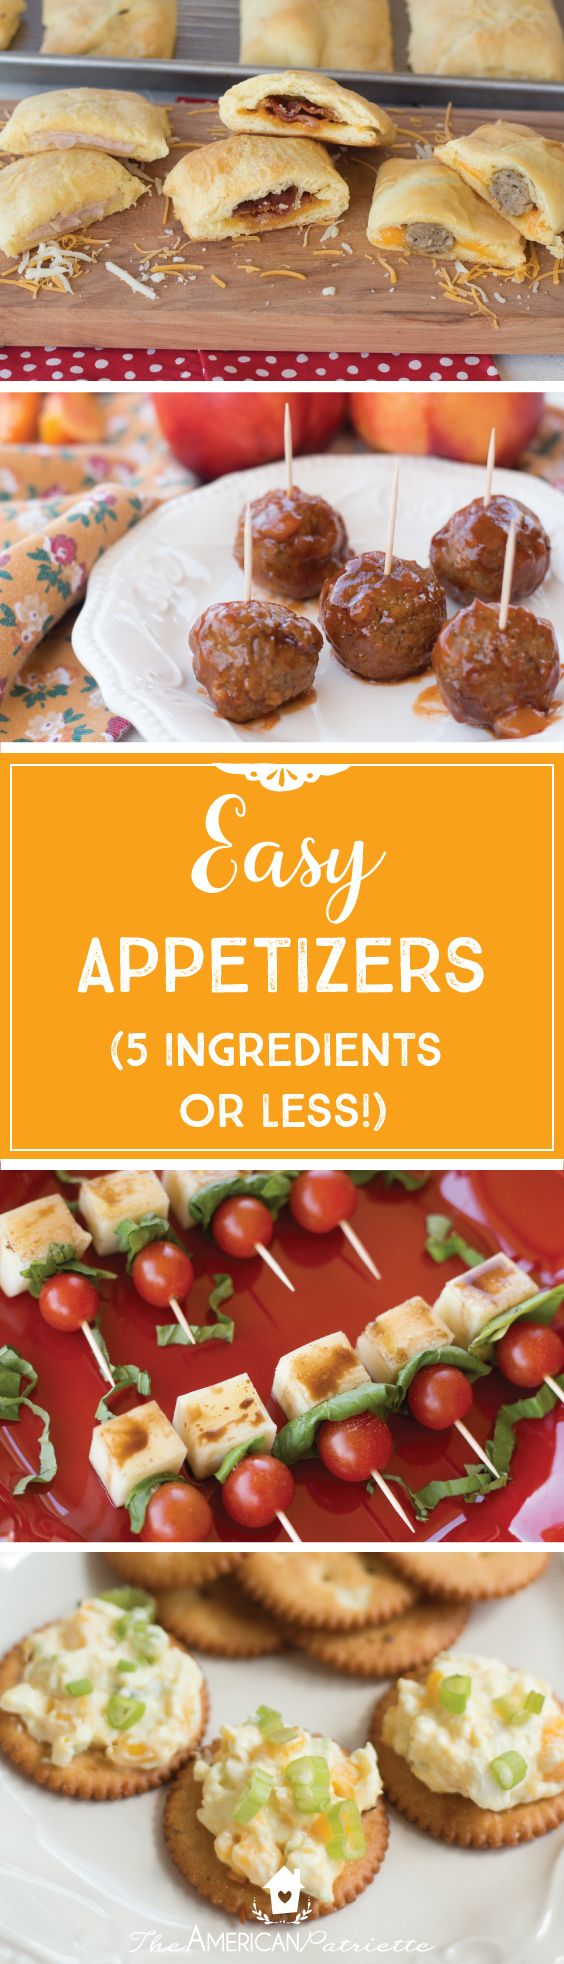 Easy Appetizer Recipes; Simple Appetizers; Easy Snacks; Tailgating Recipes; Football Party Recipes; Party Recipes